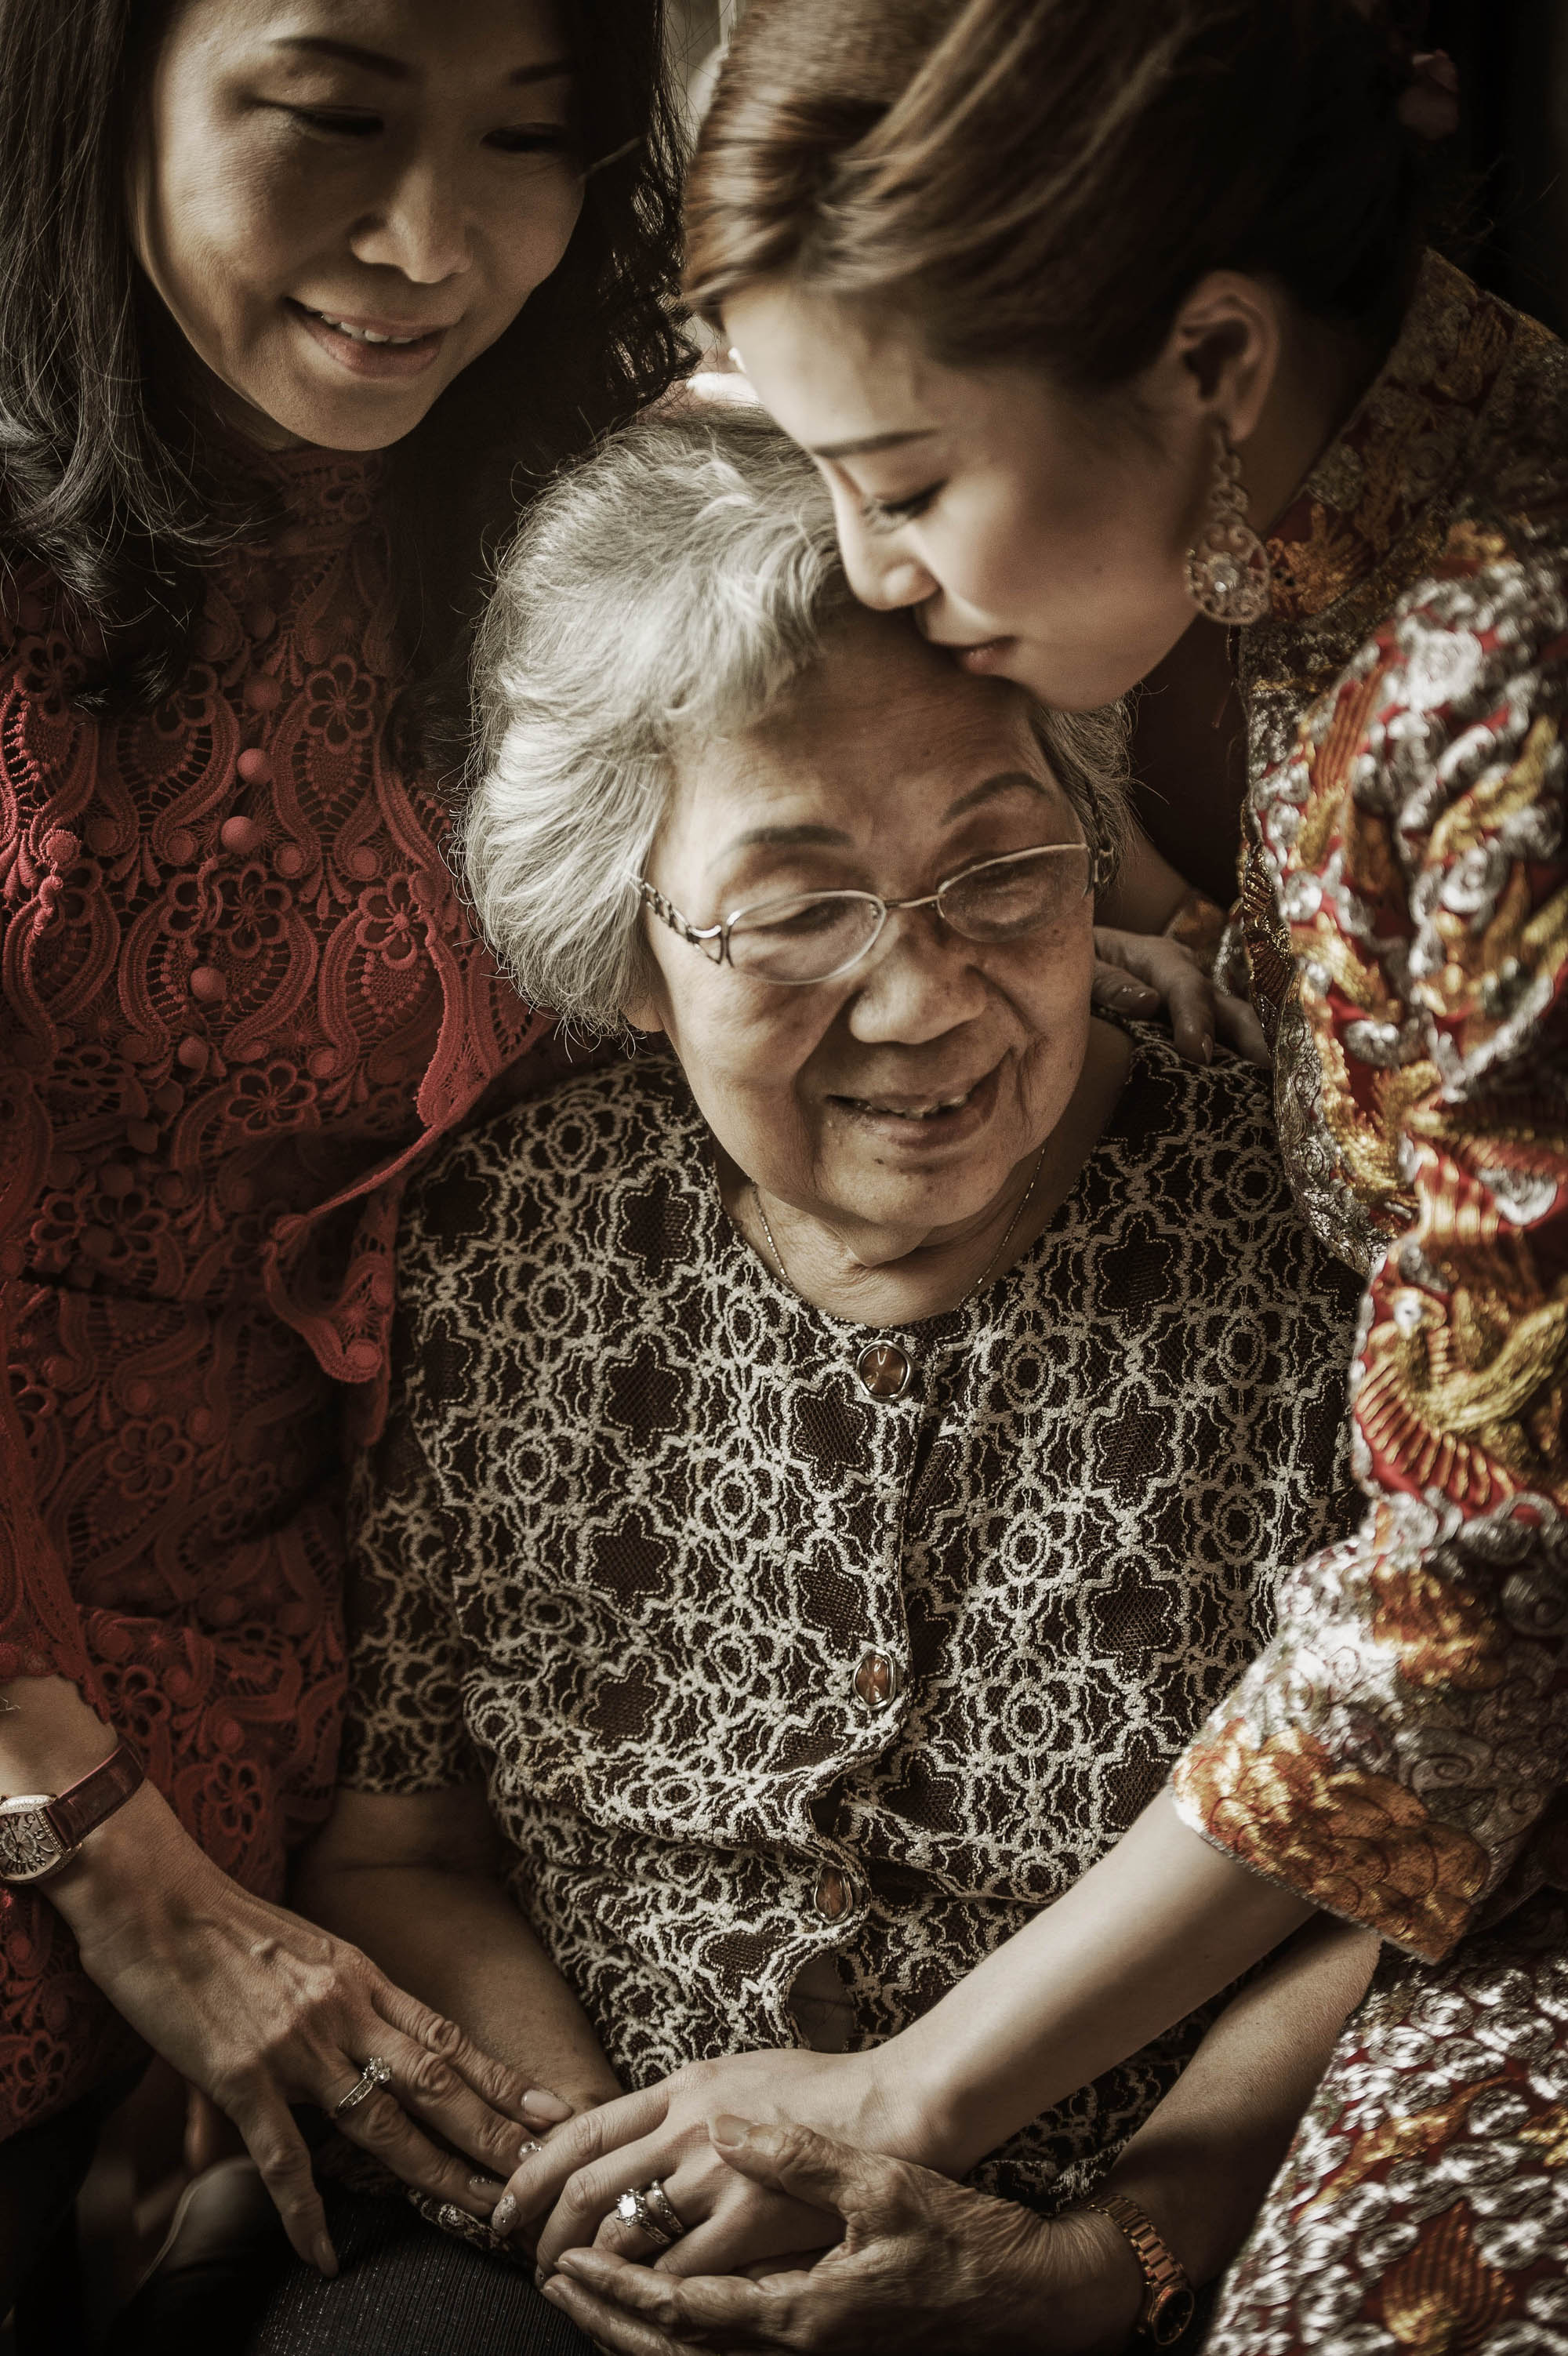 Three generations of women, bride, mom and grandmother, by CM Leung